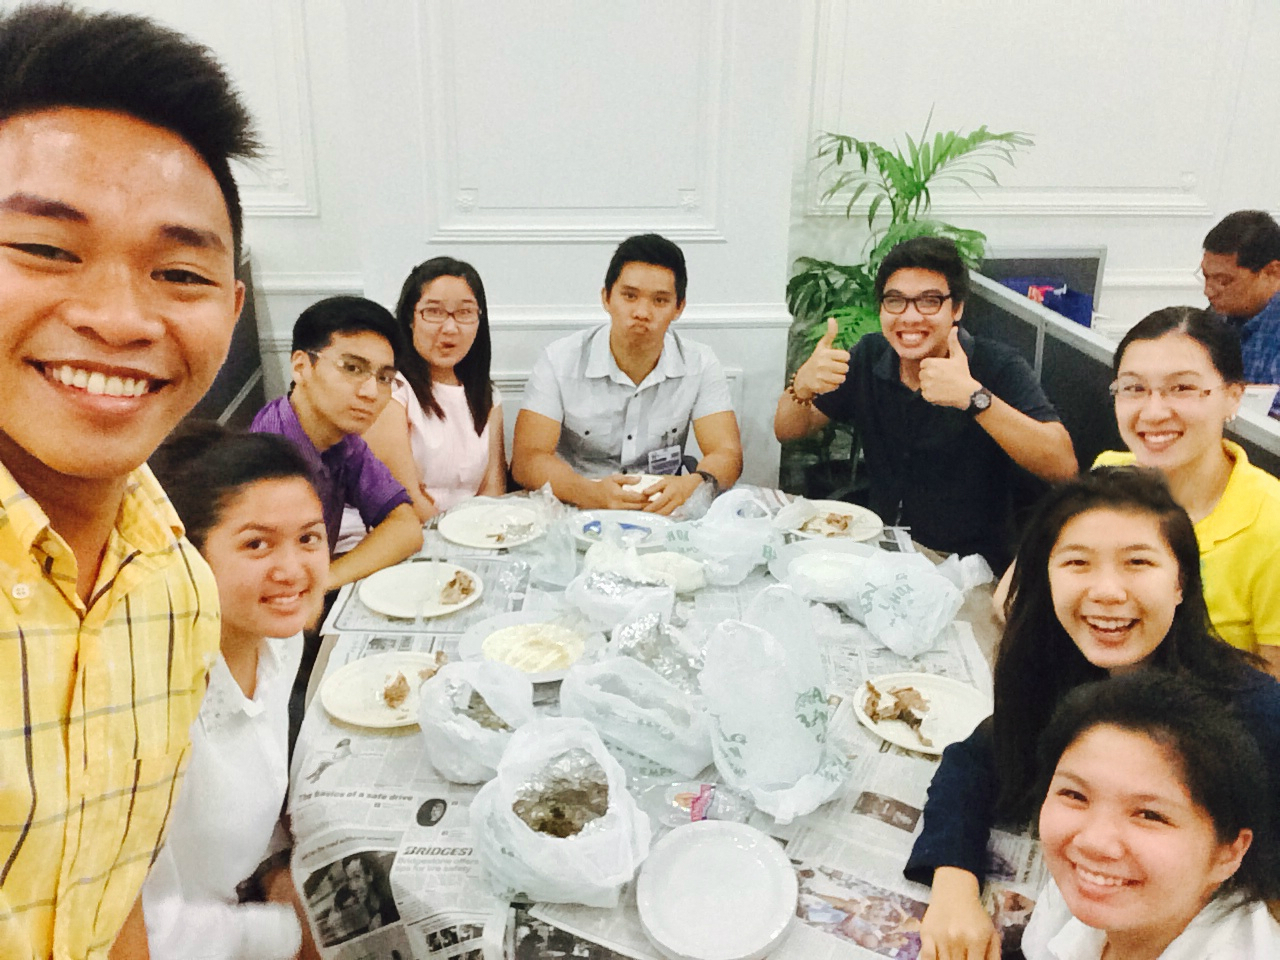 Intern Chiawen Chiang at lunch with co-workers from the Office of Senator Bam Aquino!